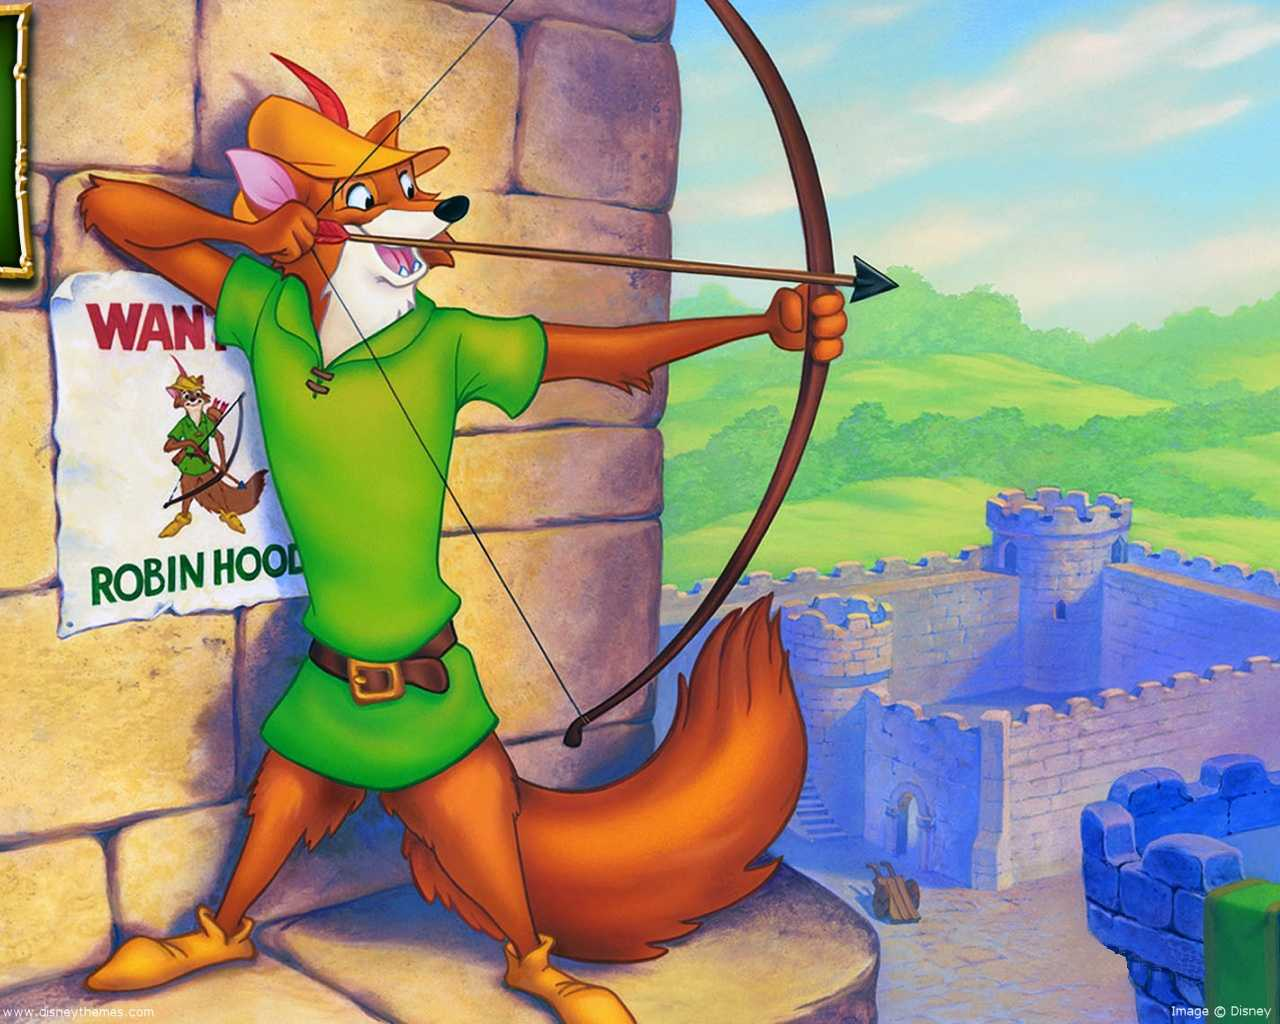 World book day 51 easy diy costume ideas closer this foxy foxs costume could be interchangeable with peter pan credit disney disney solutioingenieria Choice Image